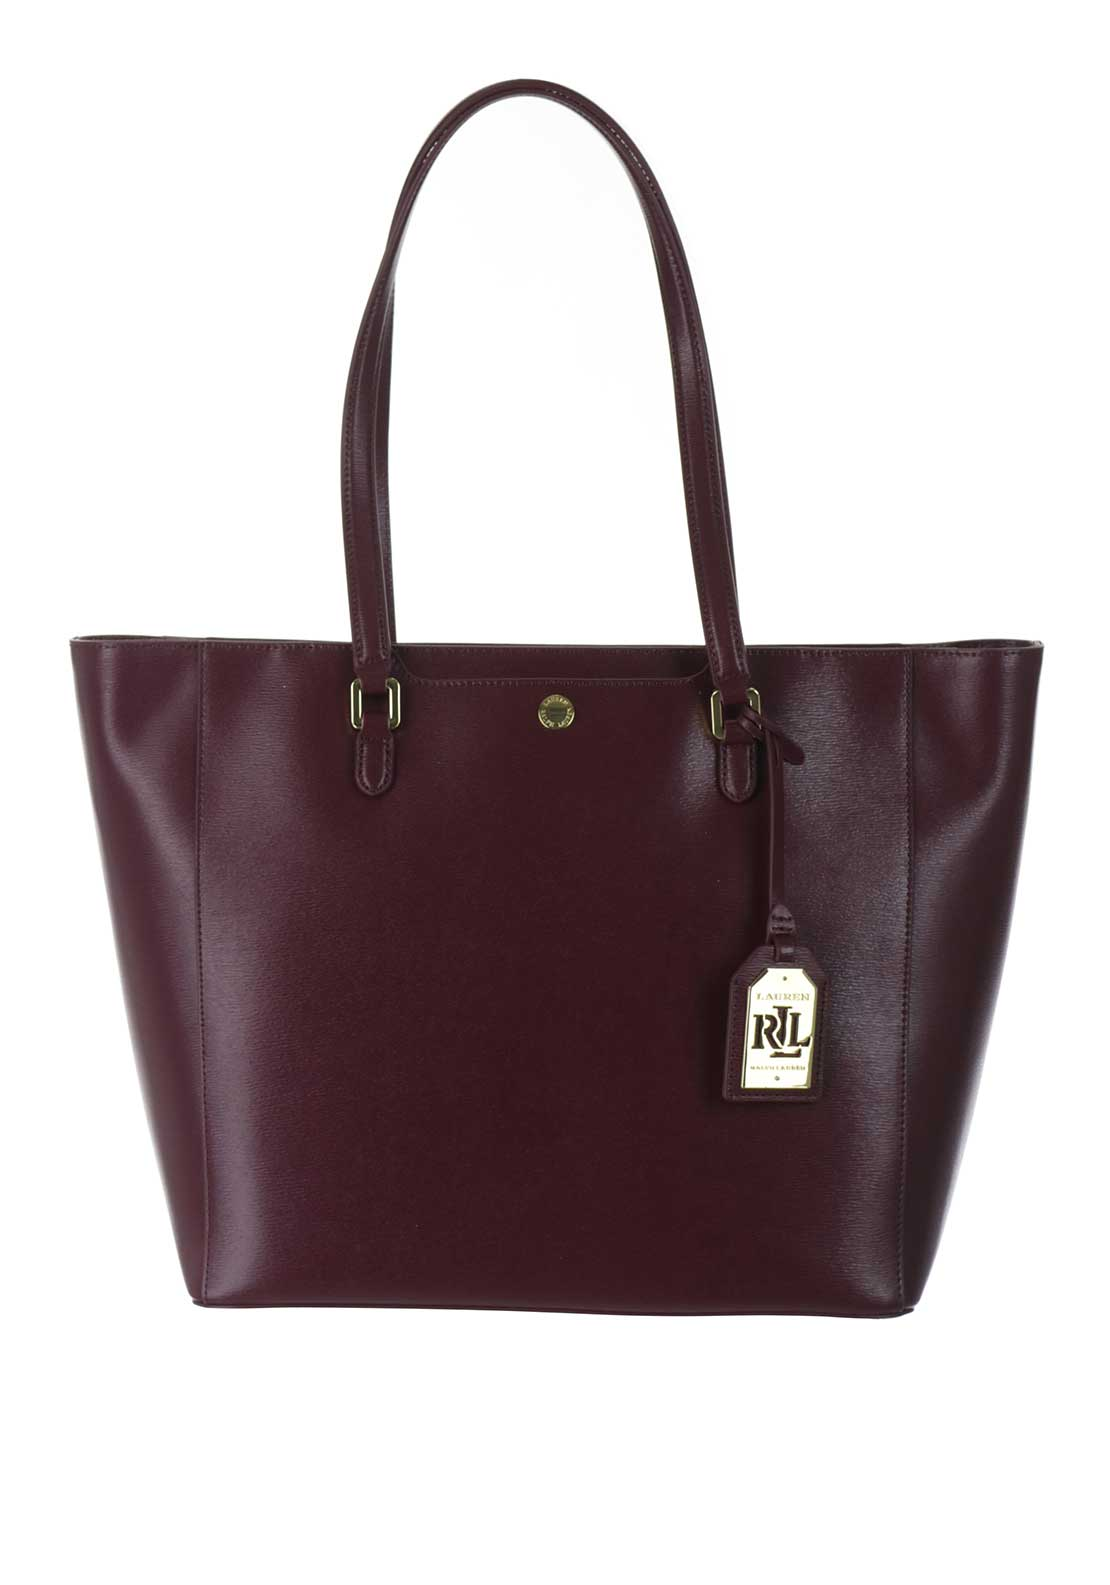 Lauren Ralph Lauren Leather Newbury Halee Tote Bag, Claret